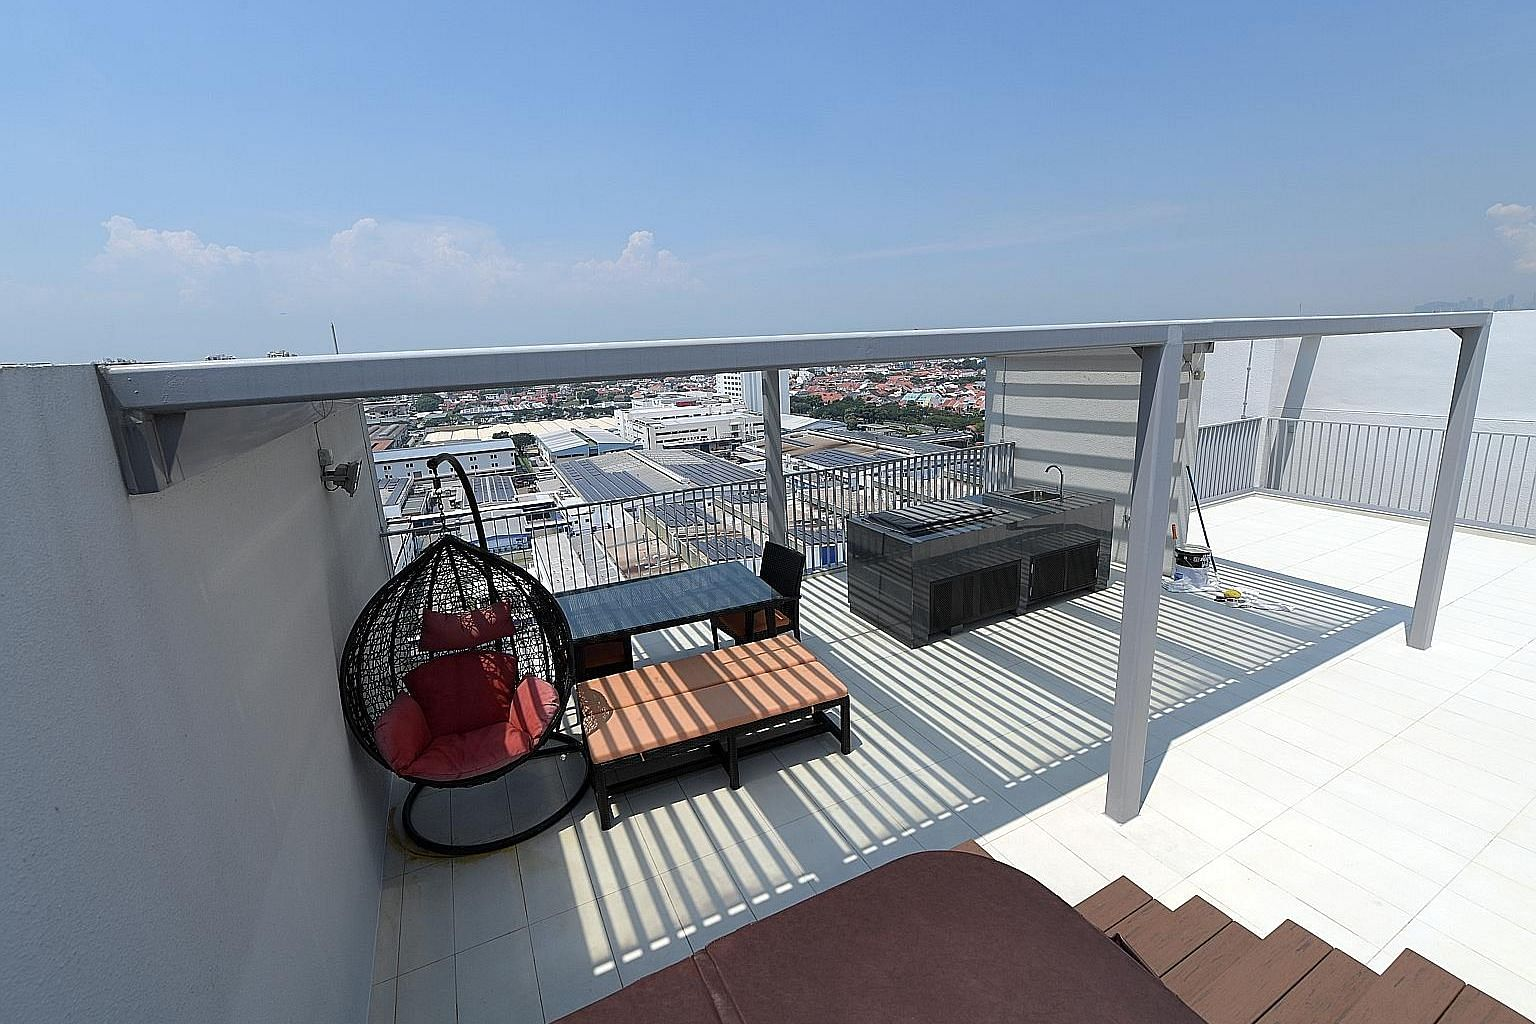 Some owners of penthouse units at condominium Bedok Residences have avoided using the barbecue pits and jacuzzis on their private roof terraces when they saw that the lightning rods connect to the metal rails and facades of the units (above right). H